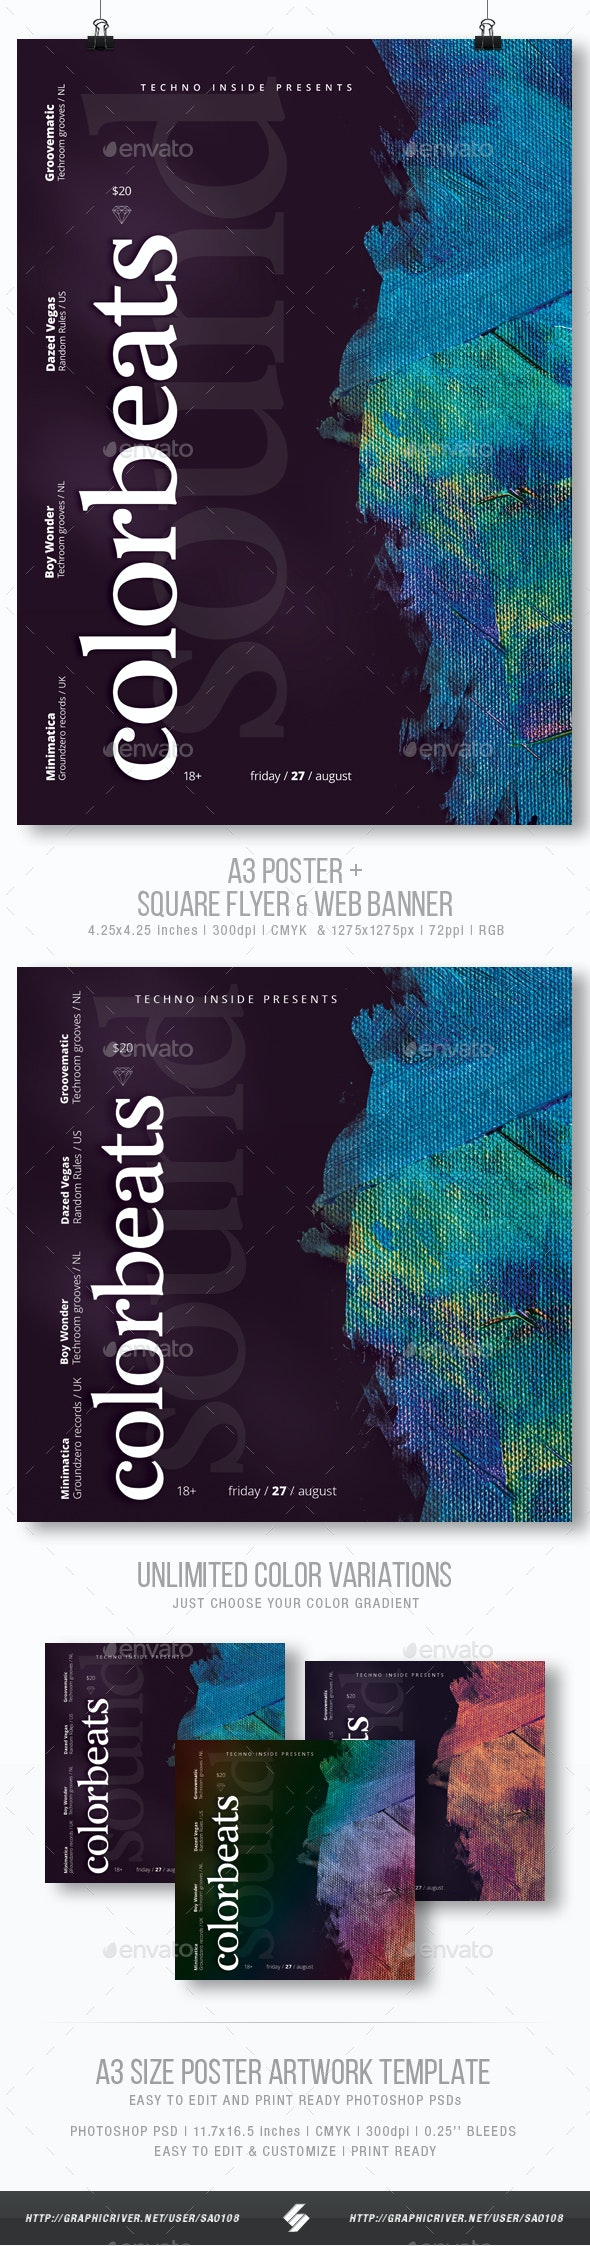 Colorbeats - Minimal Party Flyer / Poster Template A3 - Clubs & Parties Events